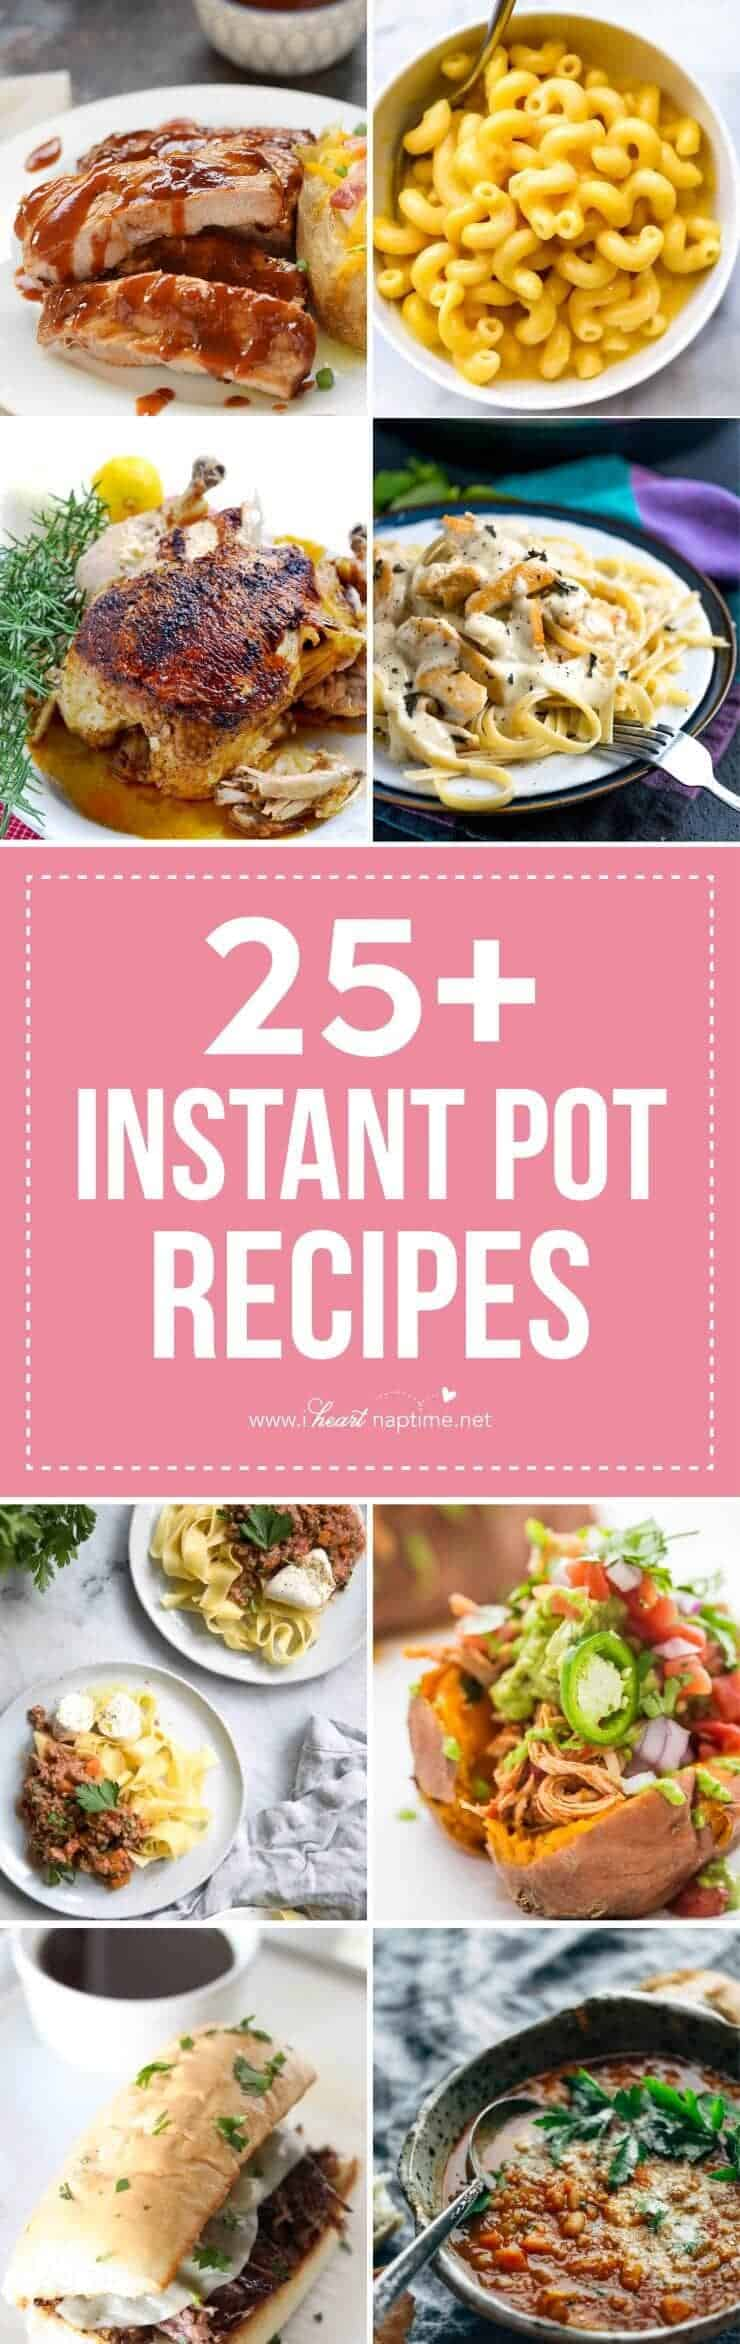 25 Super-Yummy AND Easy Instant Pot recipes to make dinner a breeze!